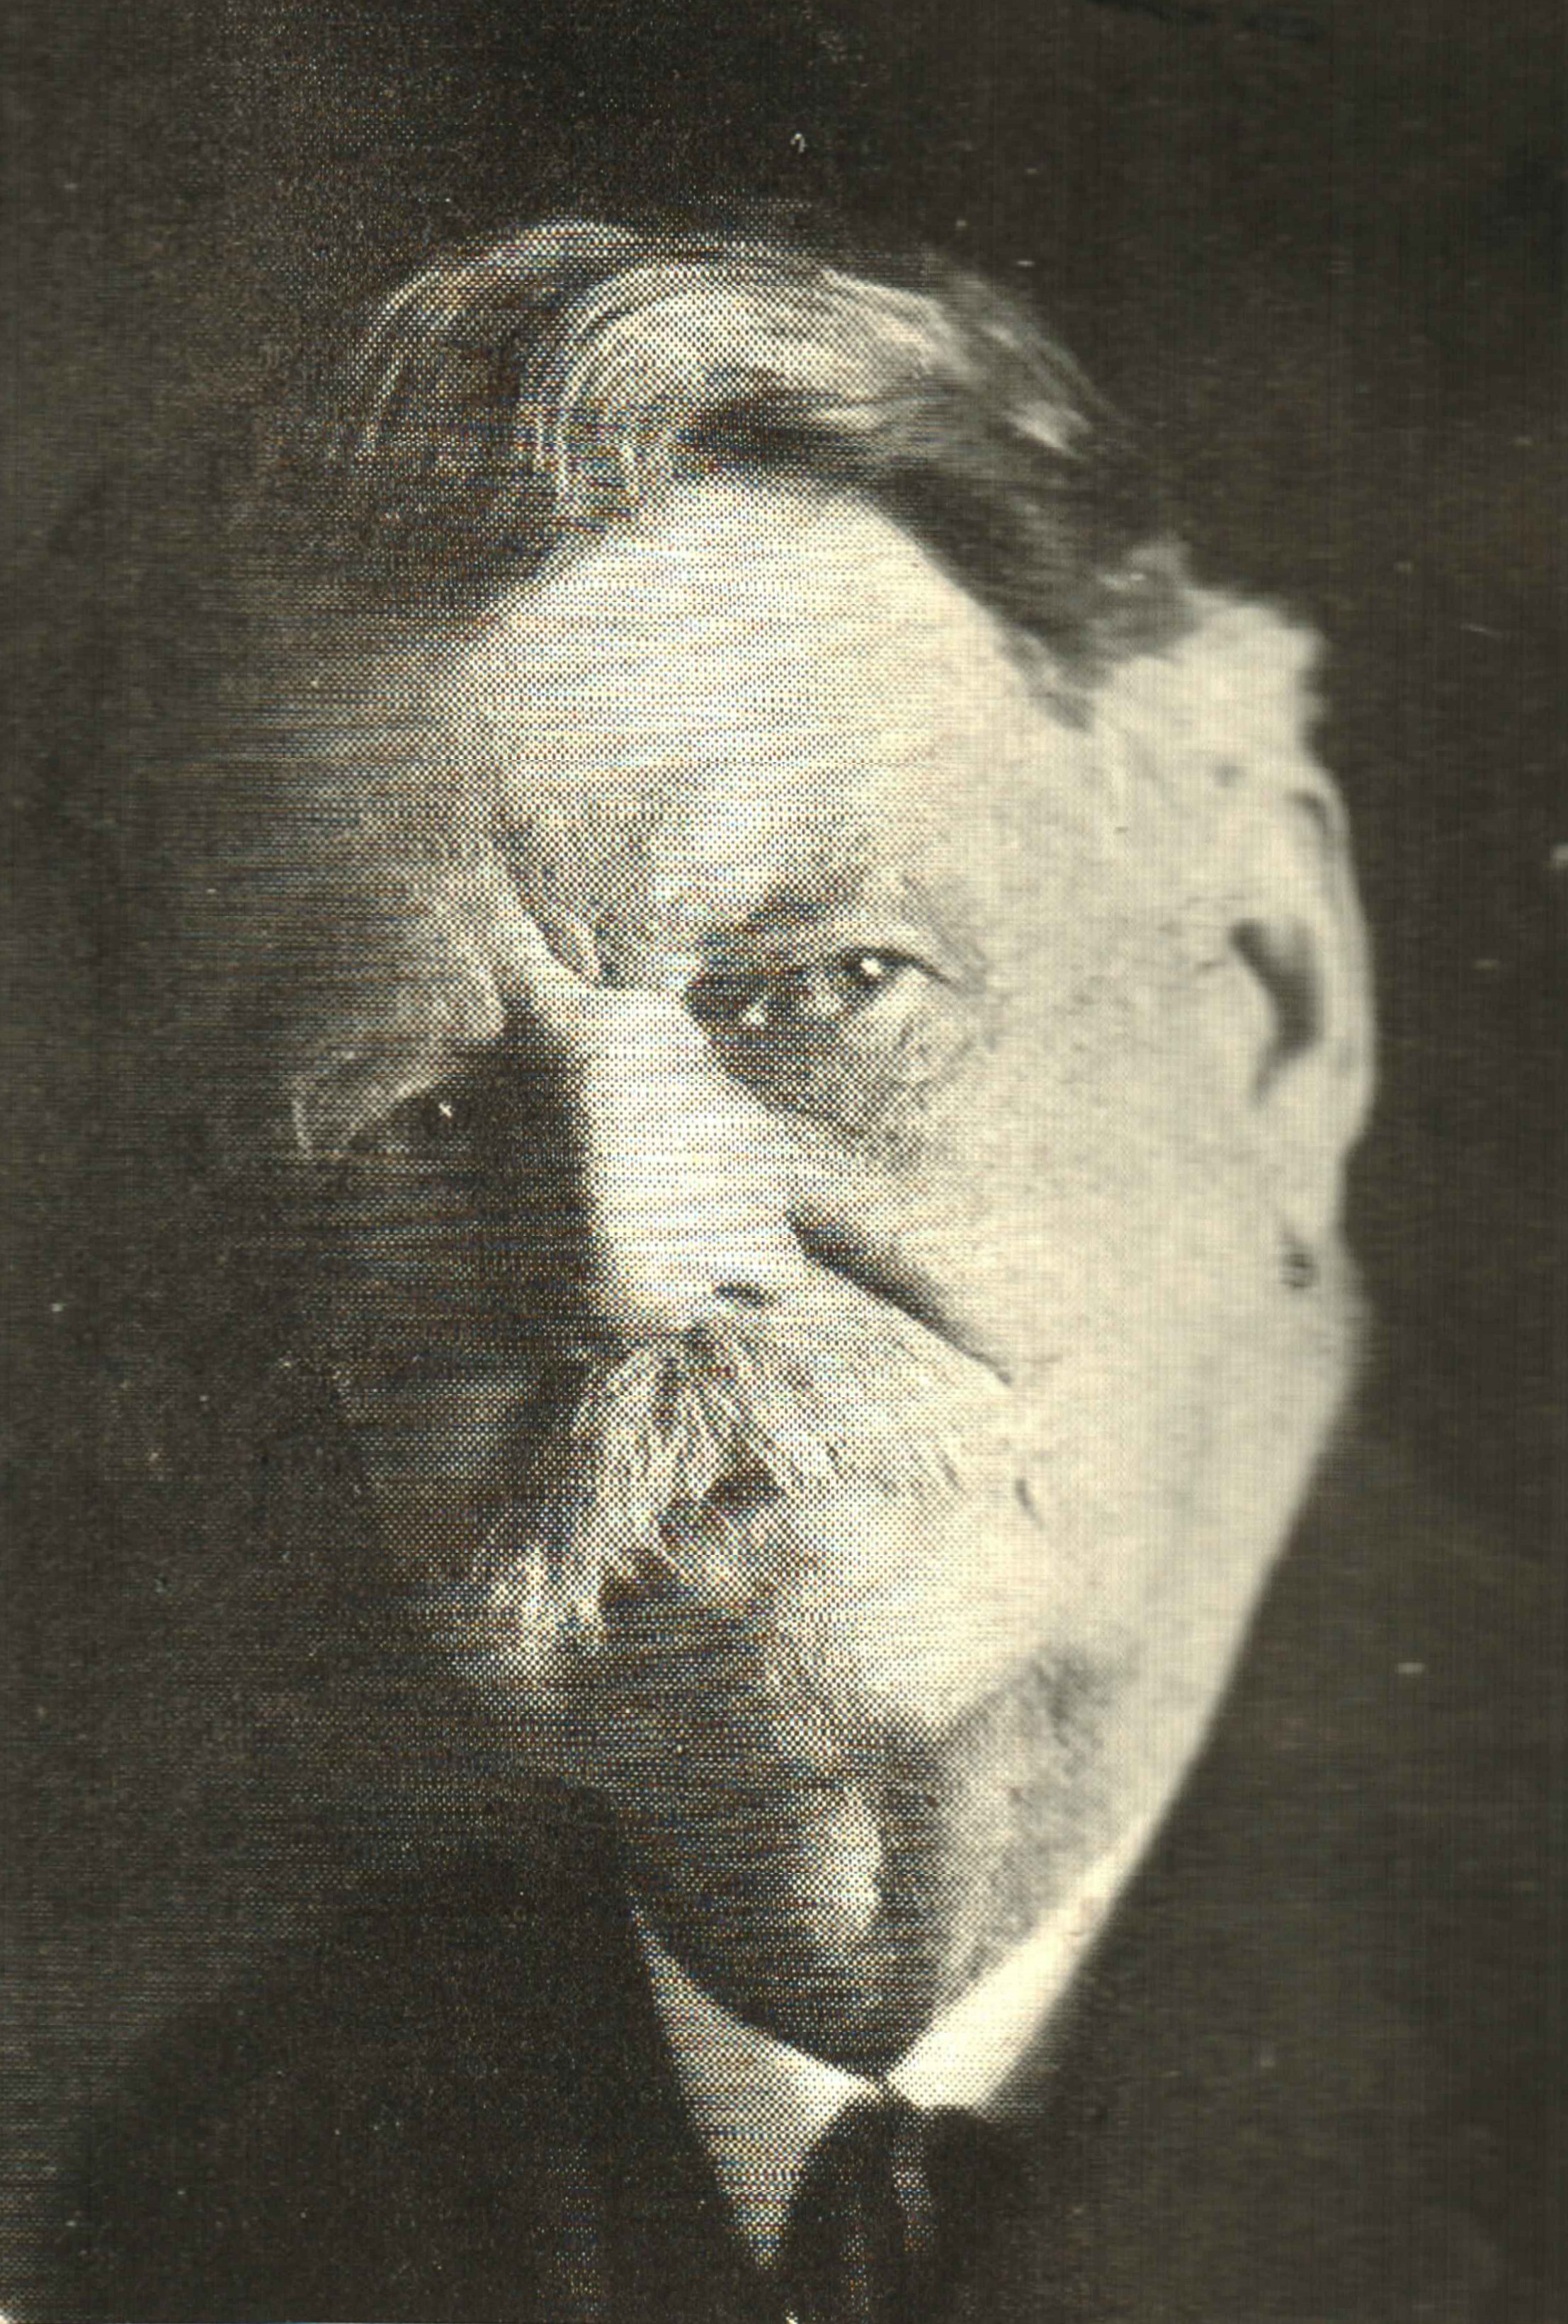 S. Floyd Hoard was instrumental in organizing the Ceredo bank, sold land for the building, designed the building himself, and served as the bank president for over thirty years. Image courtesy of the Ceredo Historical Society Museum.